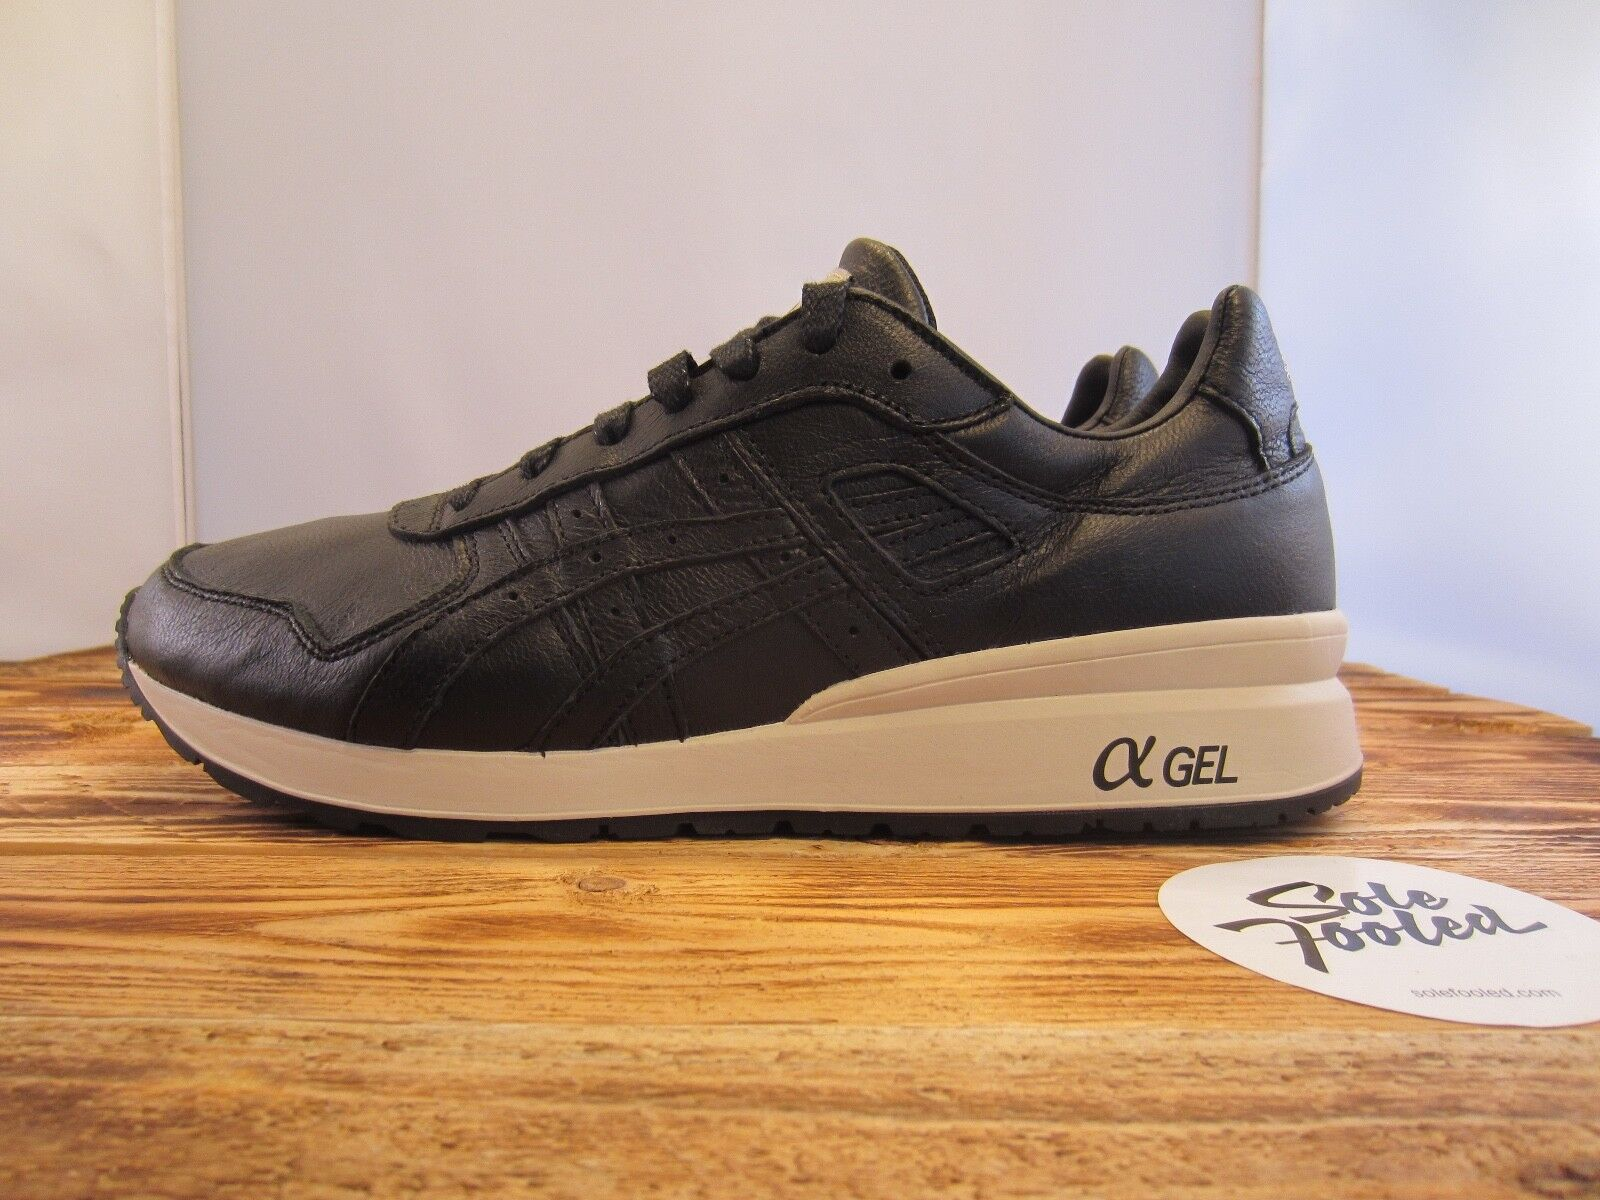 Asics GT-II black Leather (H7L2L-9090) - 42 43 44 45 47 - (2/3/5/V/GL/Gel Lyte/)